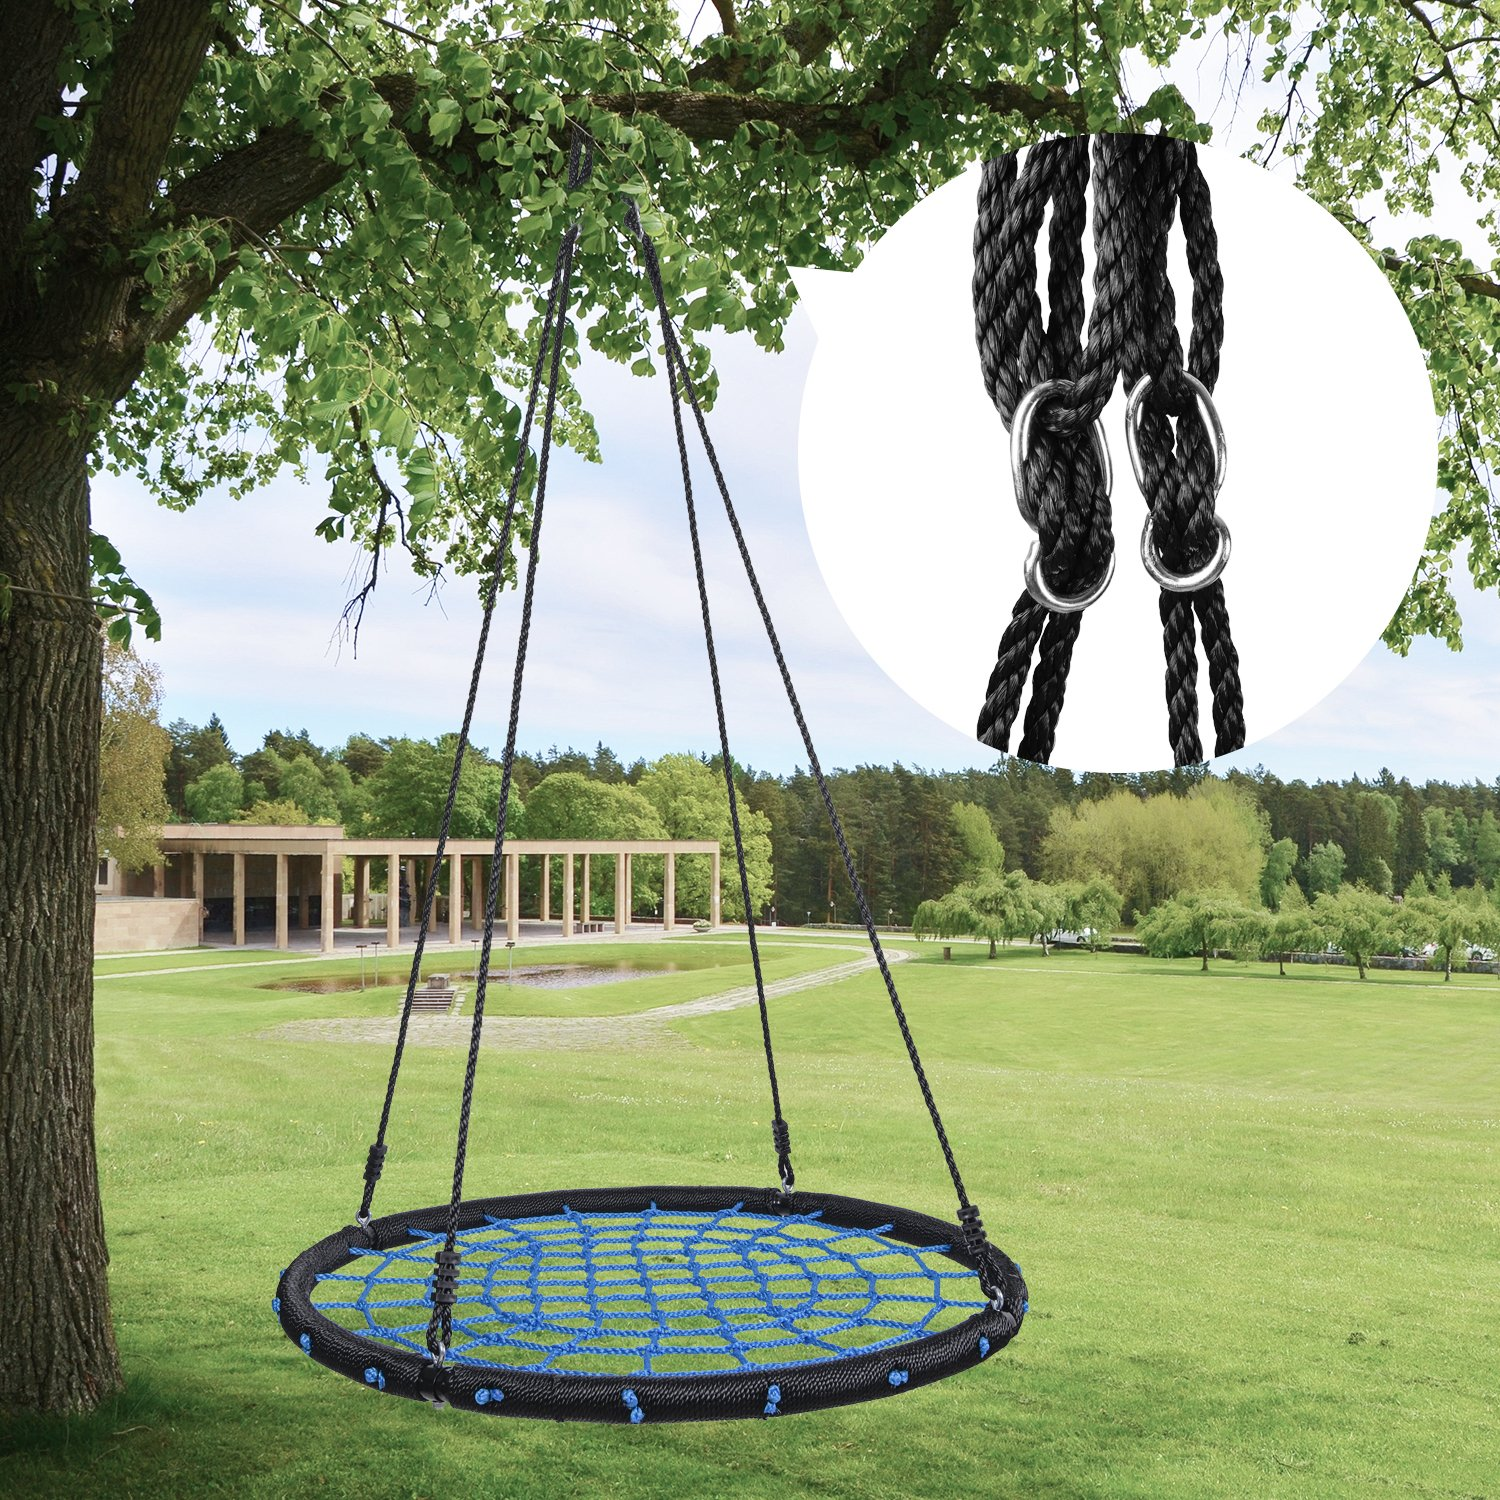 HYCLAT Saucer Tree Swing - 40''Spider Web Tree Swing Net Swing Platform Rope Round Swing 70'' Detachable Nylon Rope Swivel, Max 600 Lbs Capacity, Extra Safe and Durable for Kids by HYCLAT